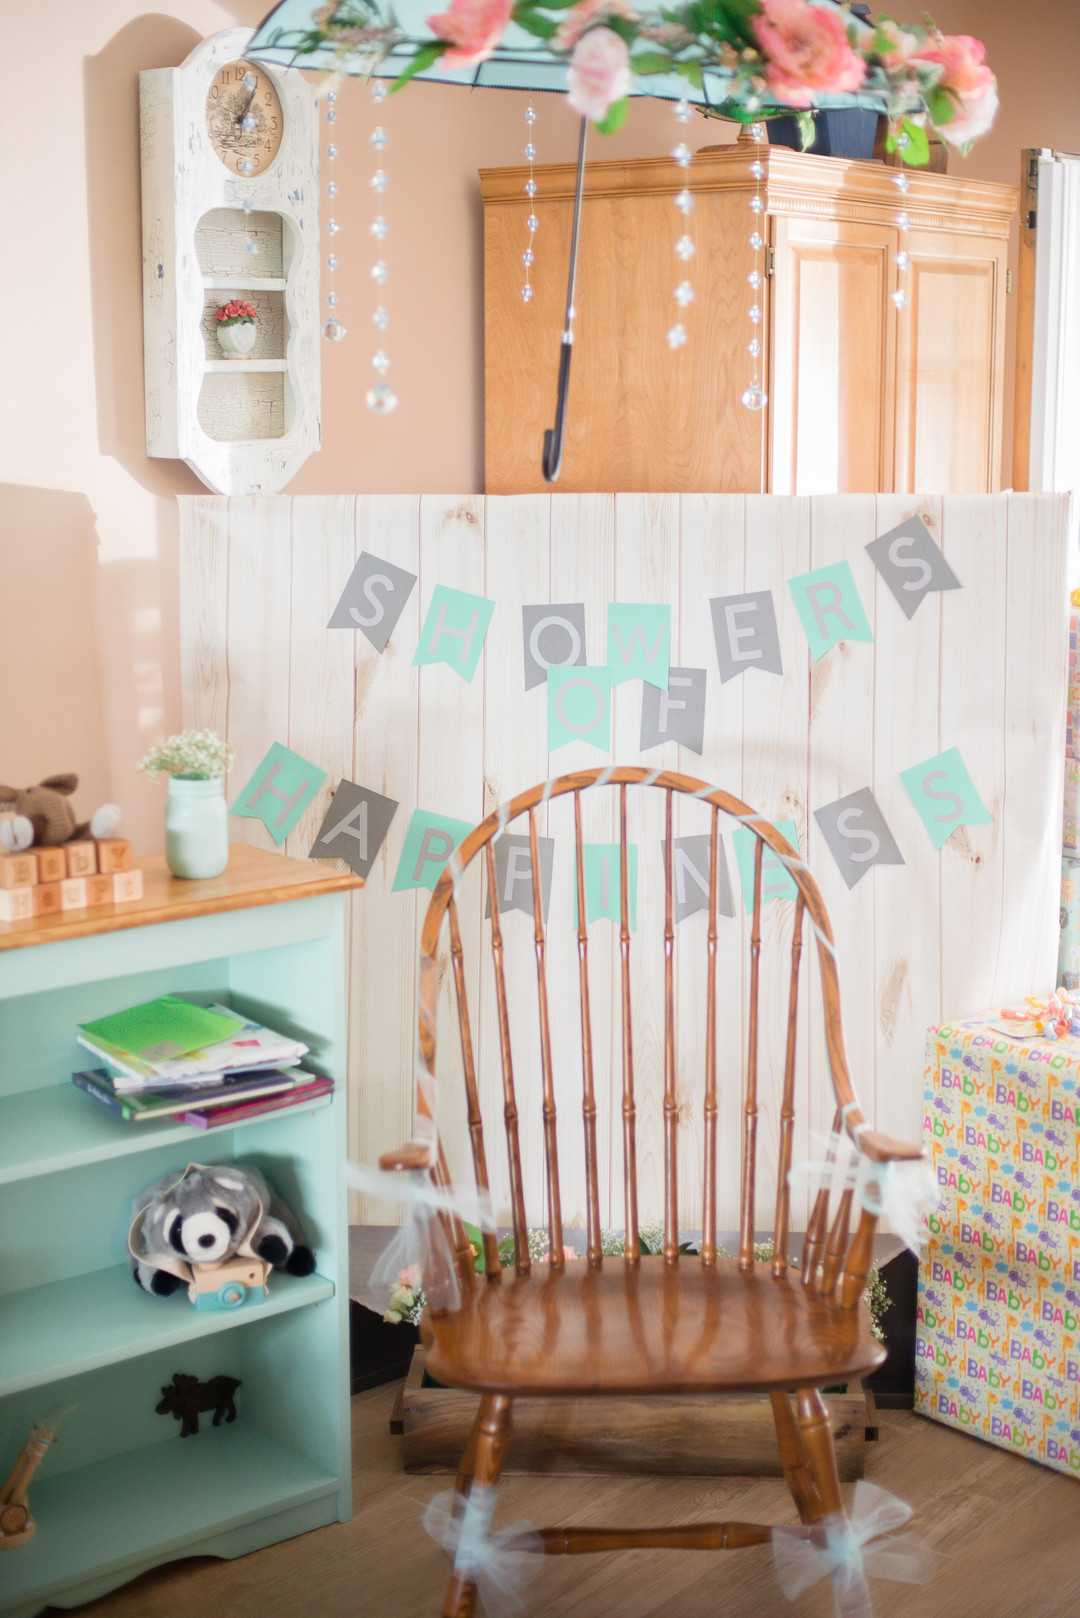 Baby Shower Decor | An April Showers Brings May Flowers Baby Shower | Kate Aspen